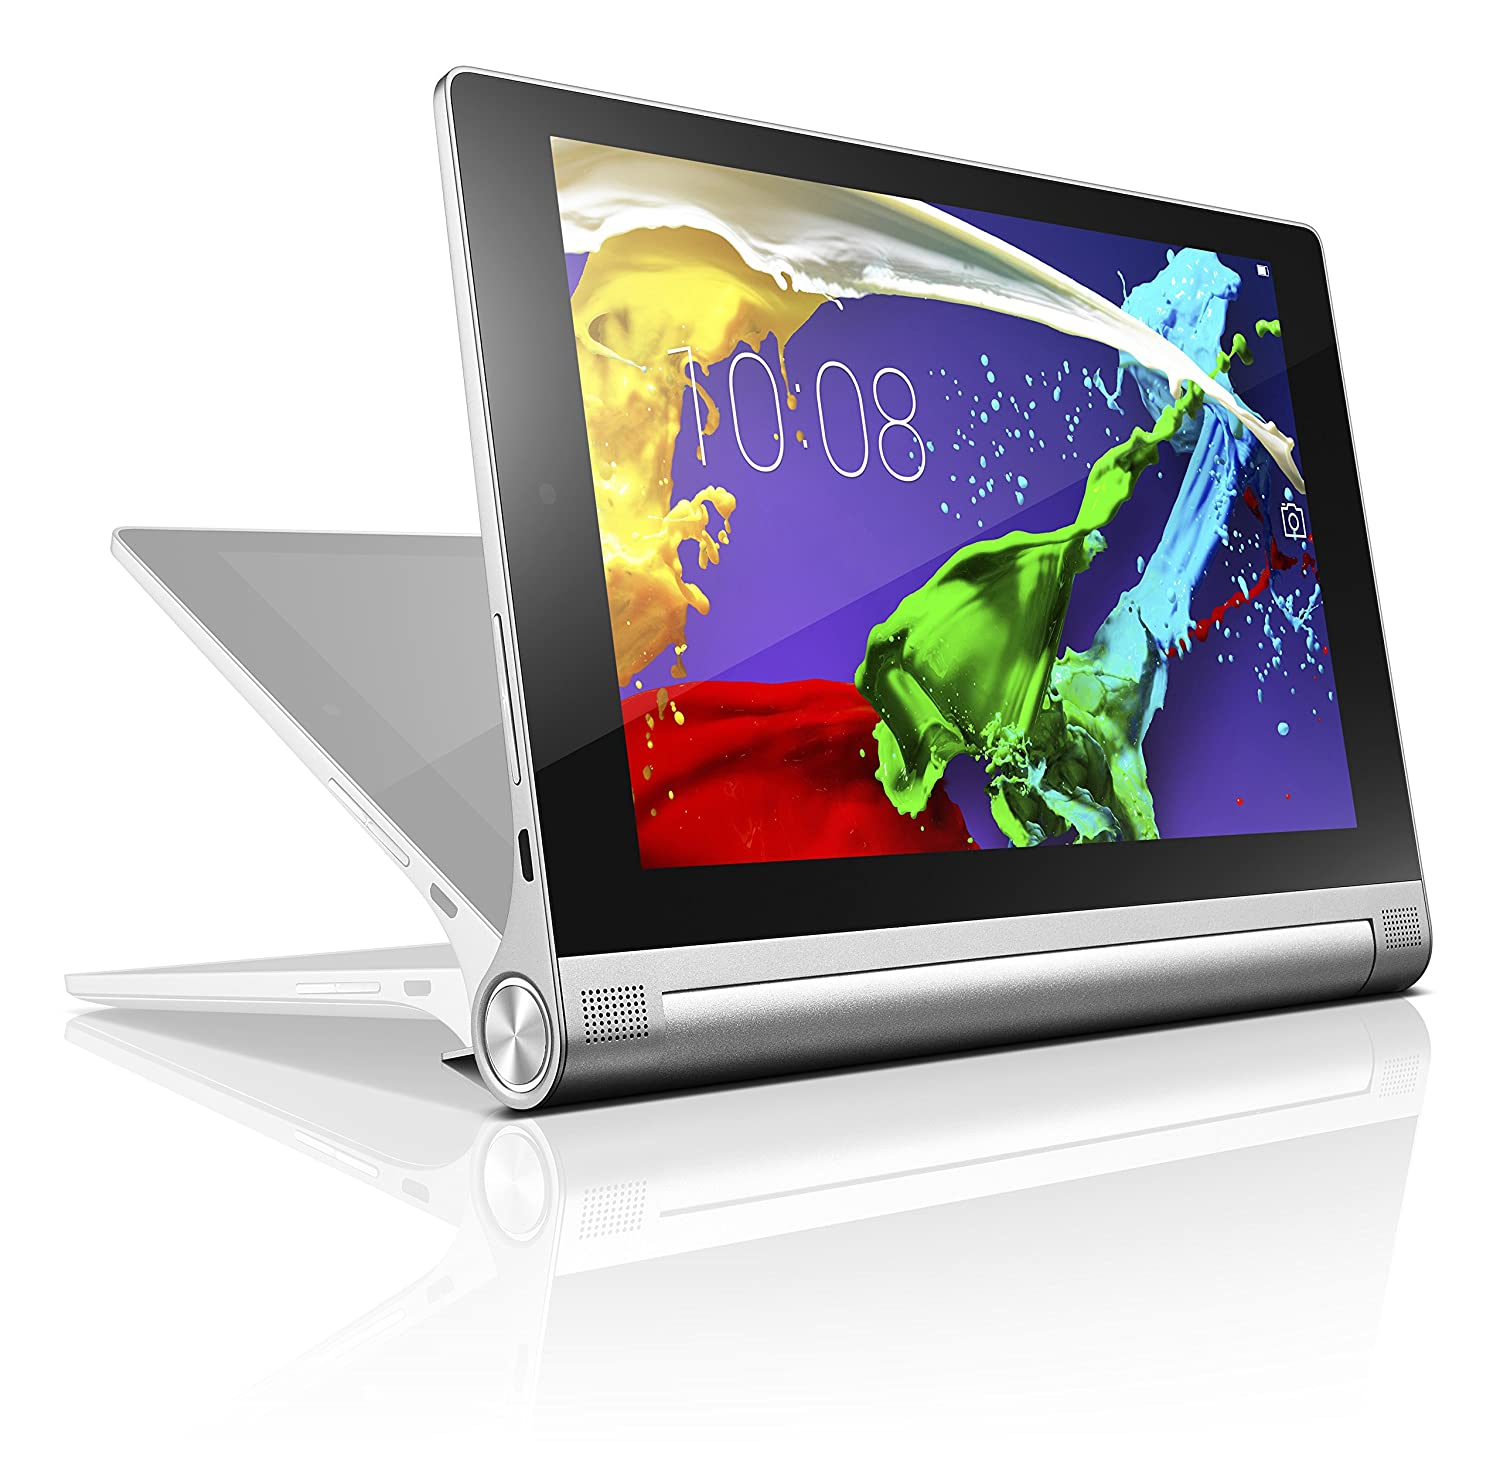 Lenovo YOGA TABLET 2-830F 59426326